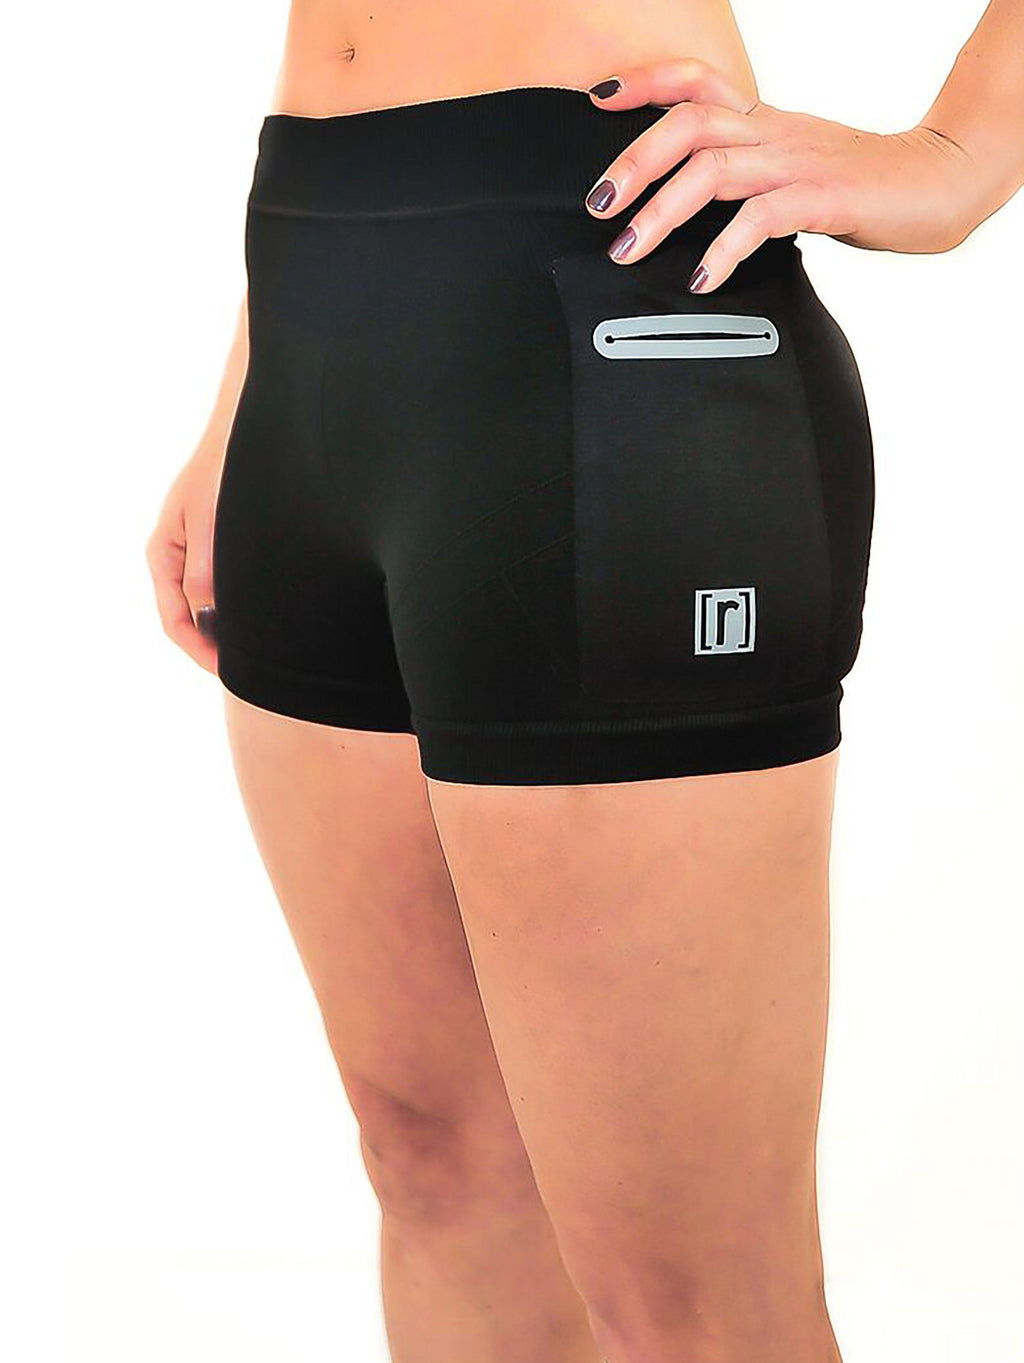 Black compression shorts with patented fully seamless front and pockets. Side view.